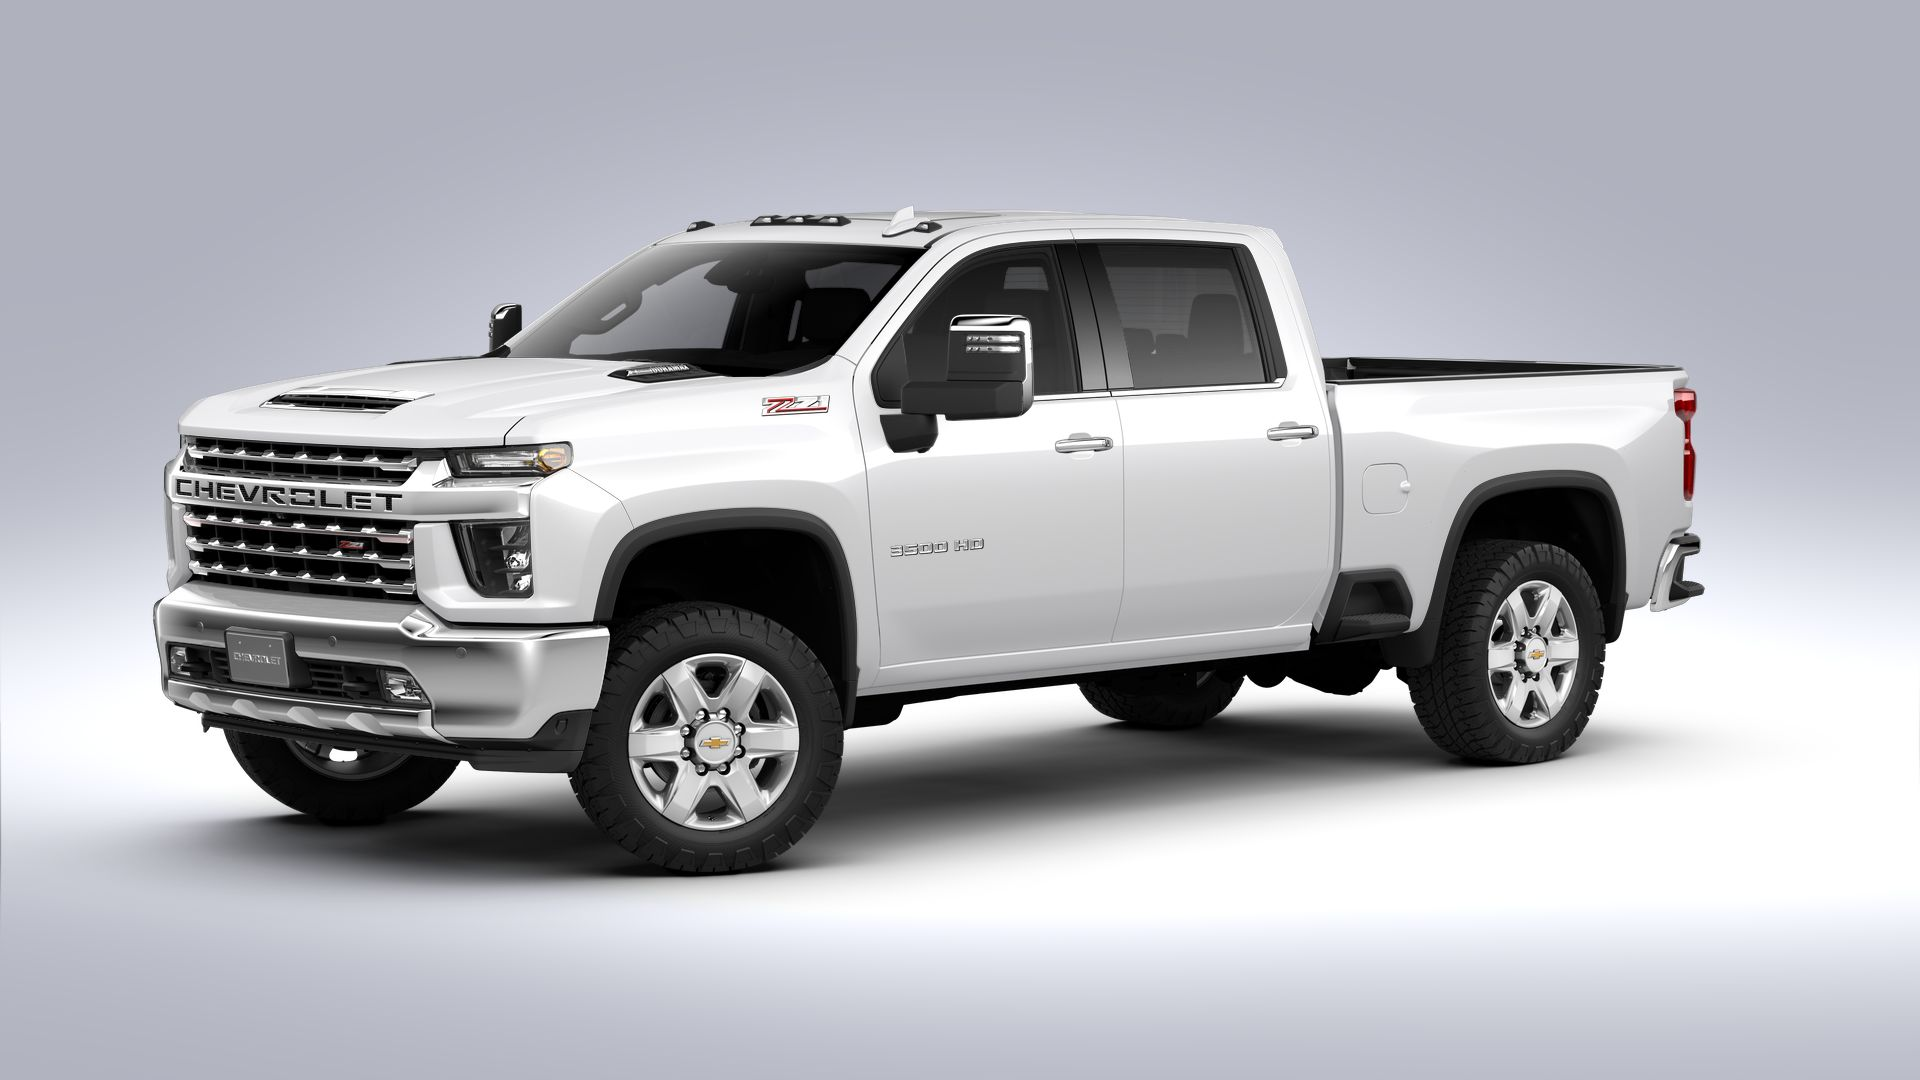 New 2021 Chevrolet Silverado 3500 HD LTZ